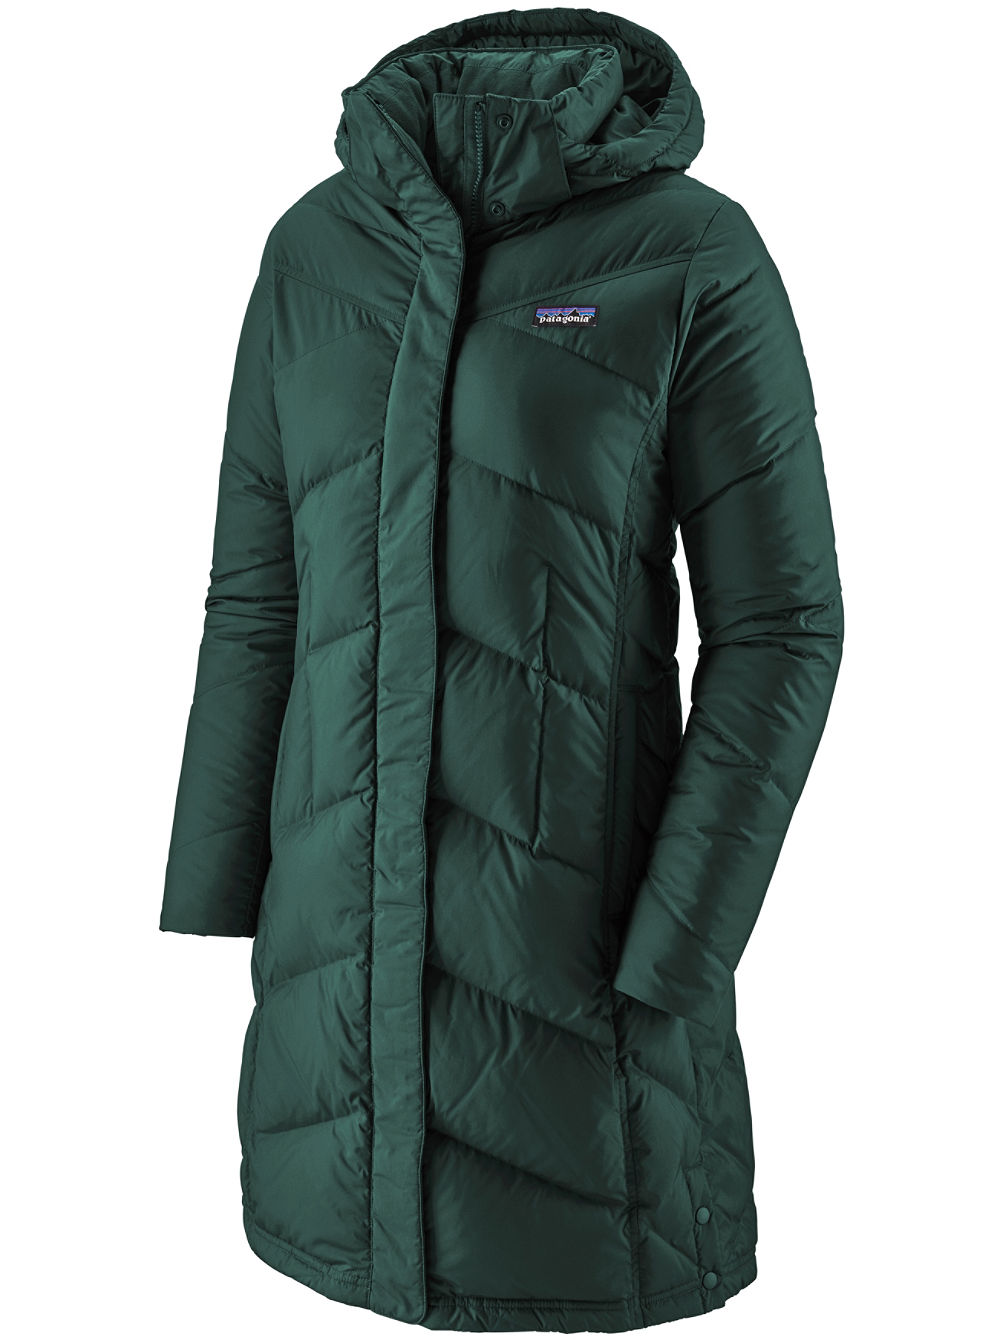 Down With It Insulator Jacket